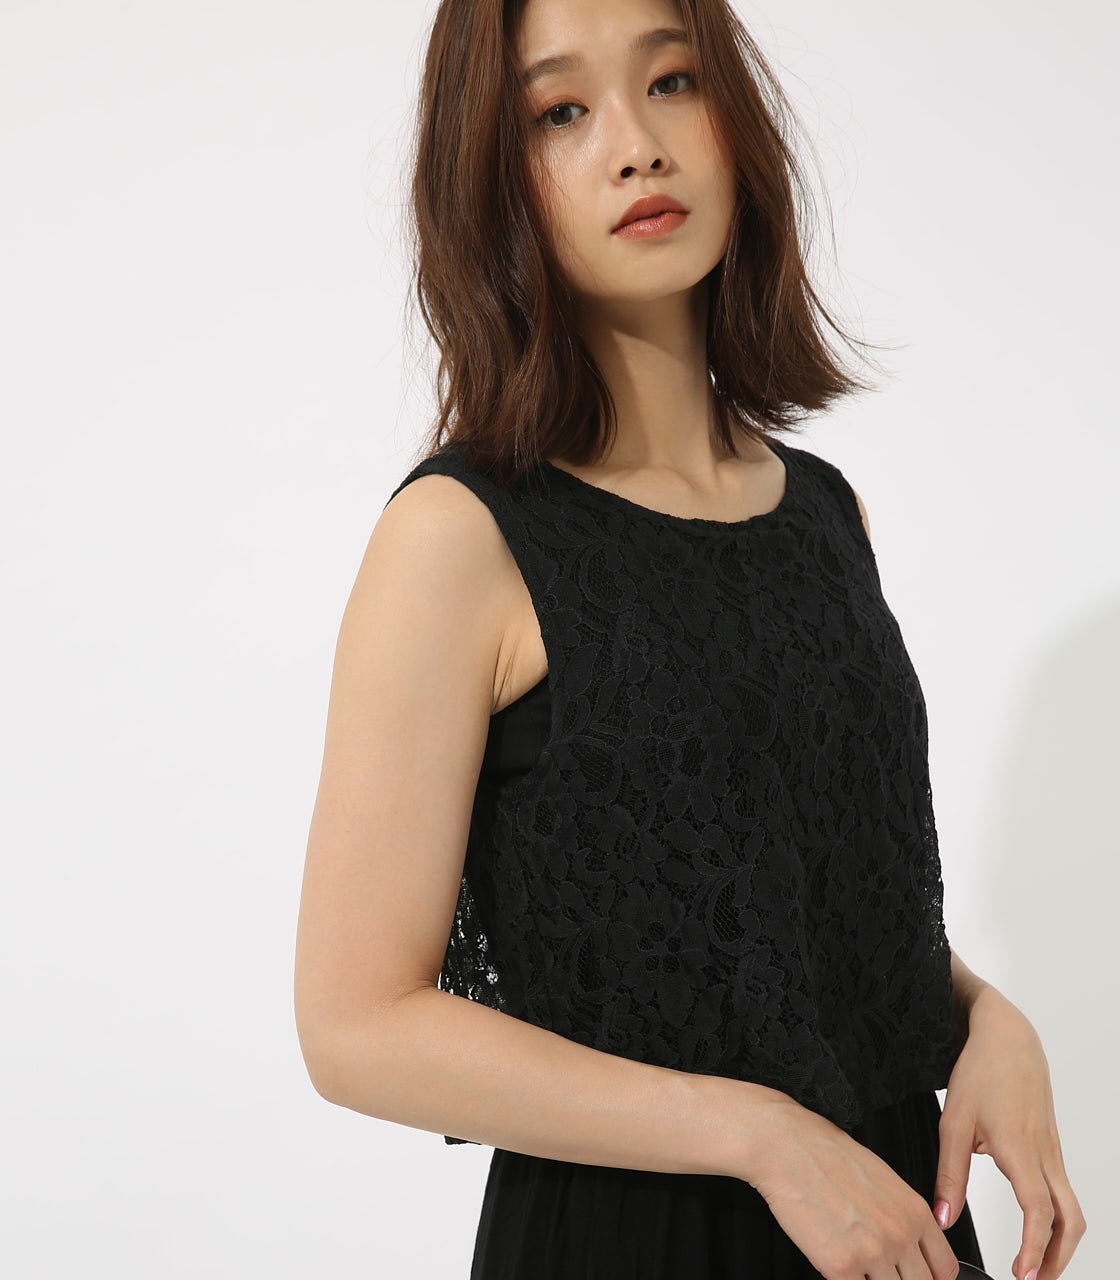 【AZUL BY MOUSSY】レースドッキングワンピース 詳細画像 BLK 3